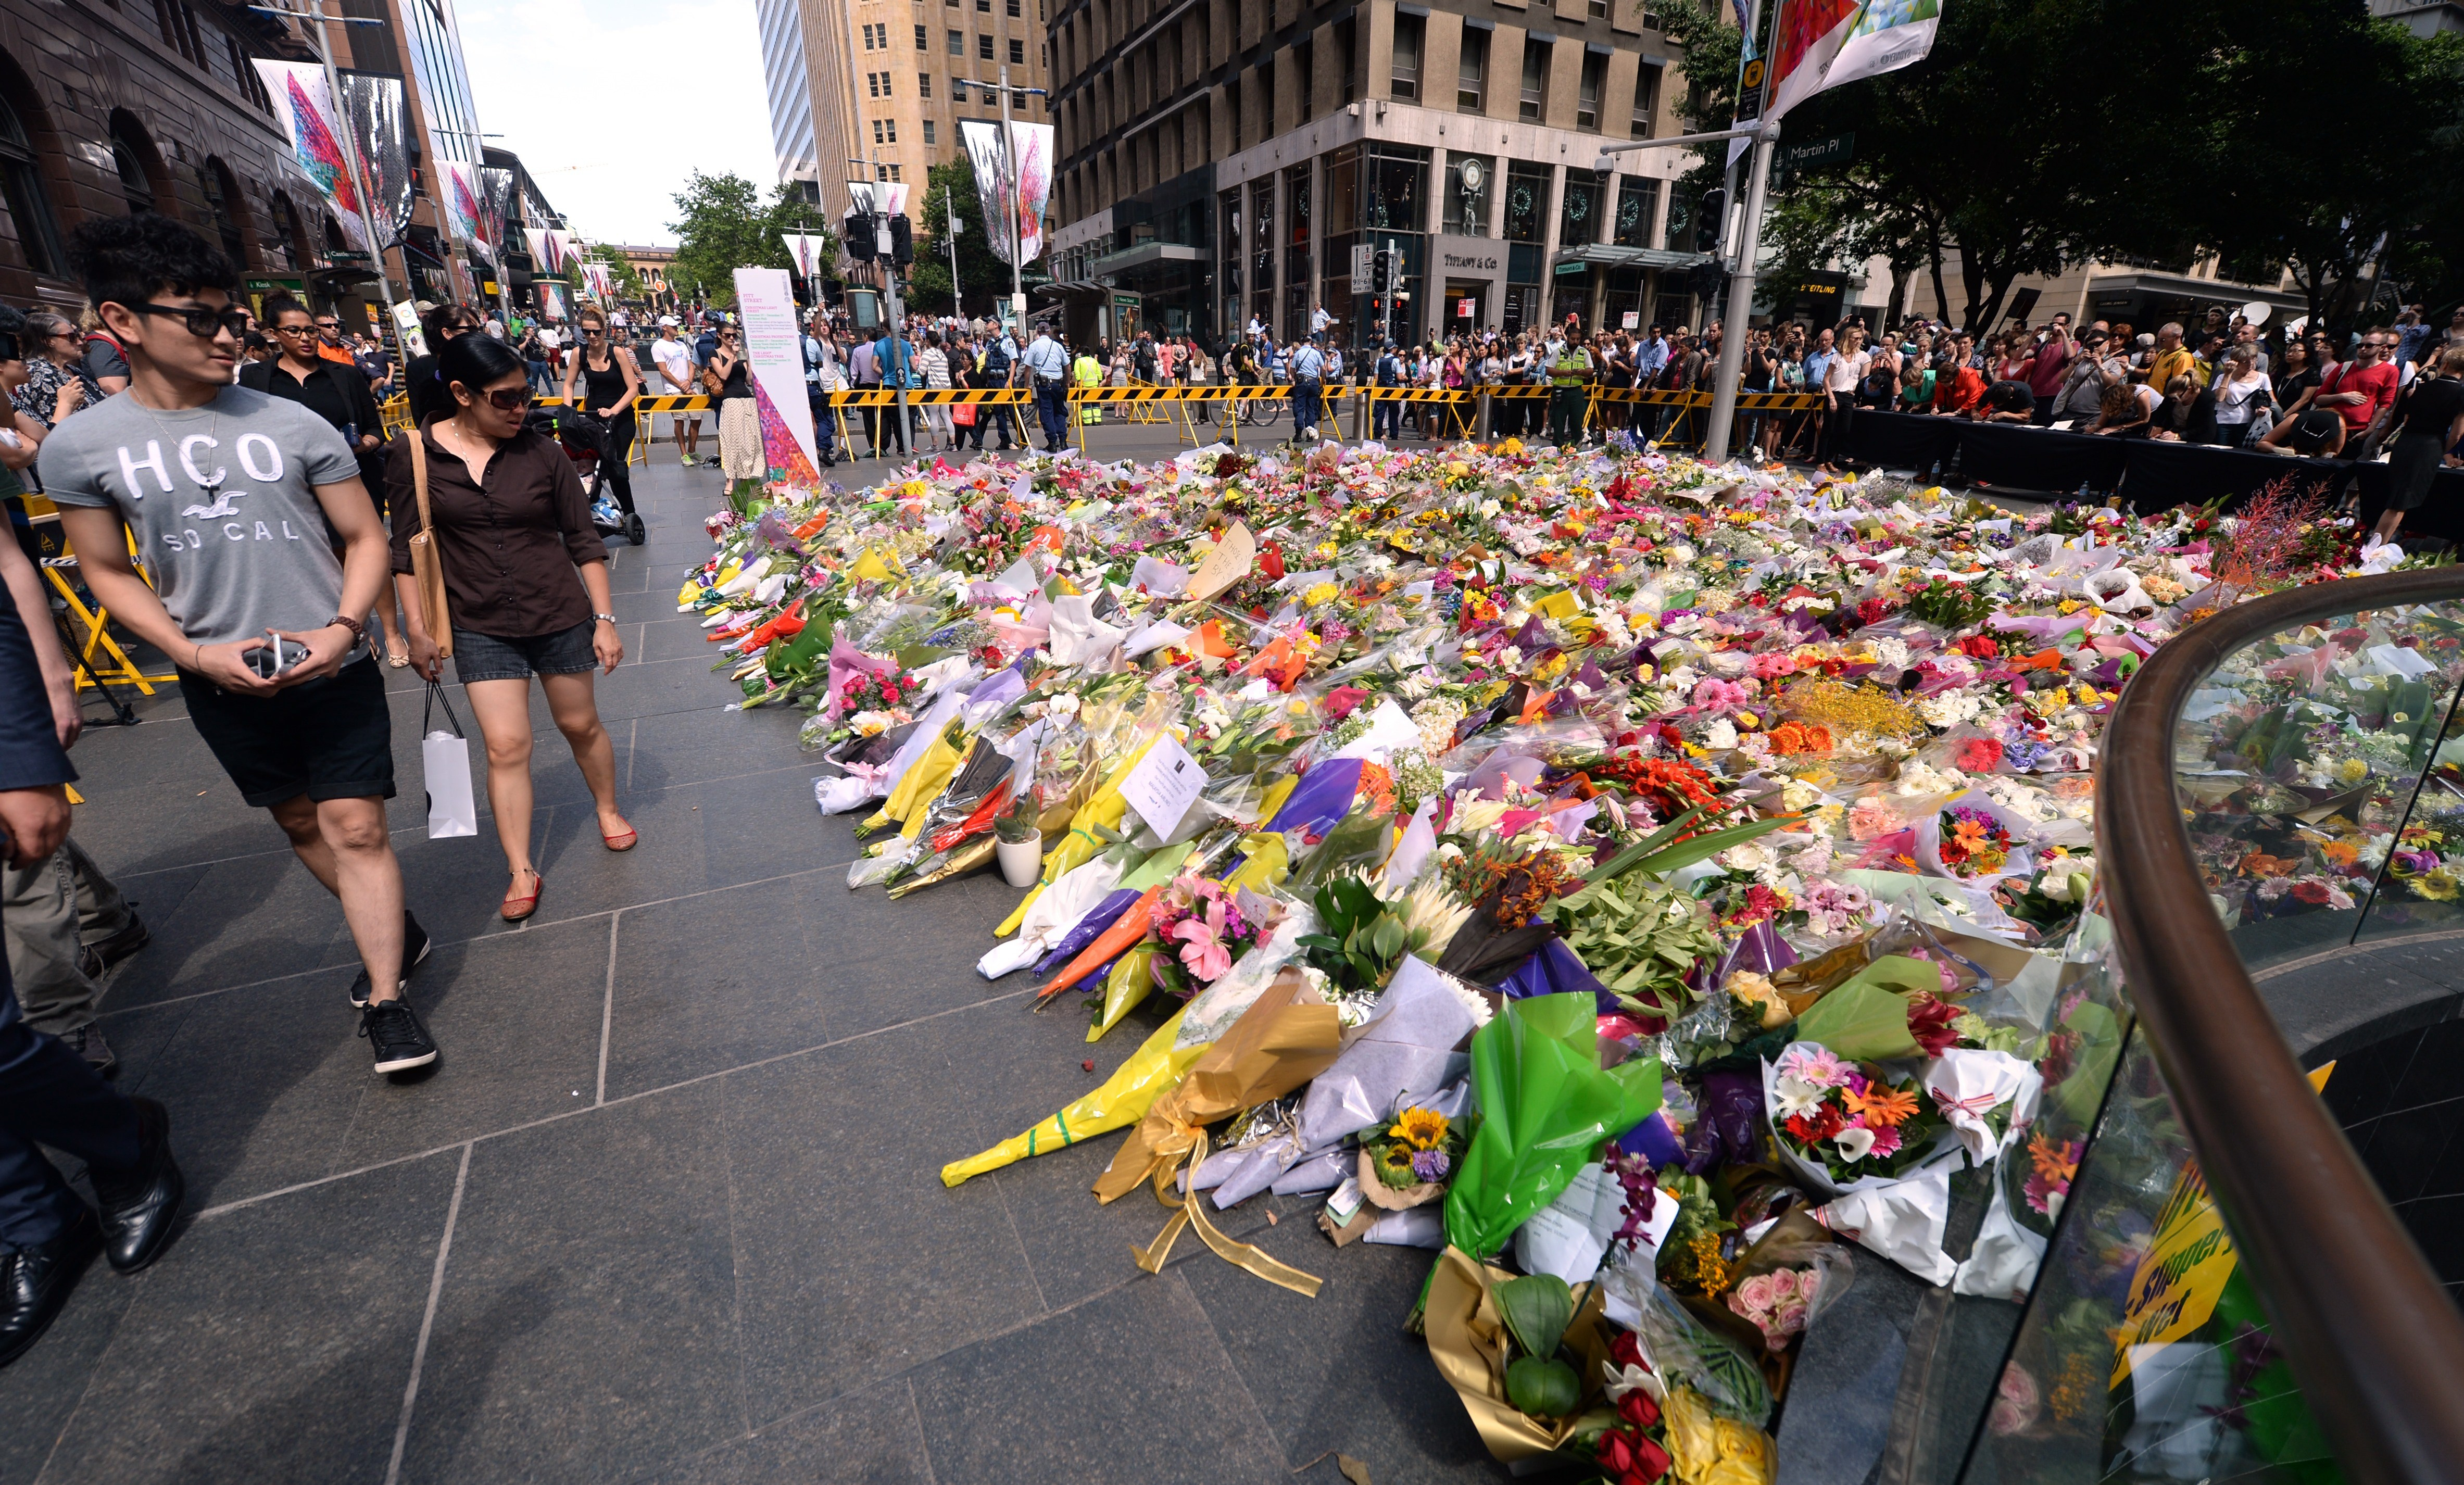 Visitors look at a makeshift memorial near the scene of the fatal siege in the heart of Sydney's financial district on Dec. 16, 2014. Sydneysiders including tearful office workers and Muslim women in hijabs laid flowers at the scene in an outpouring of grief and shock